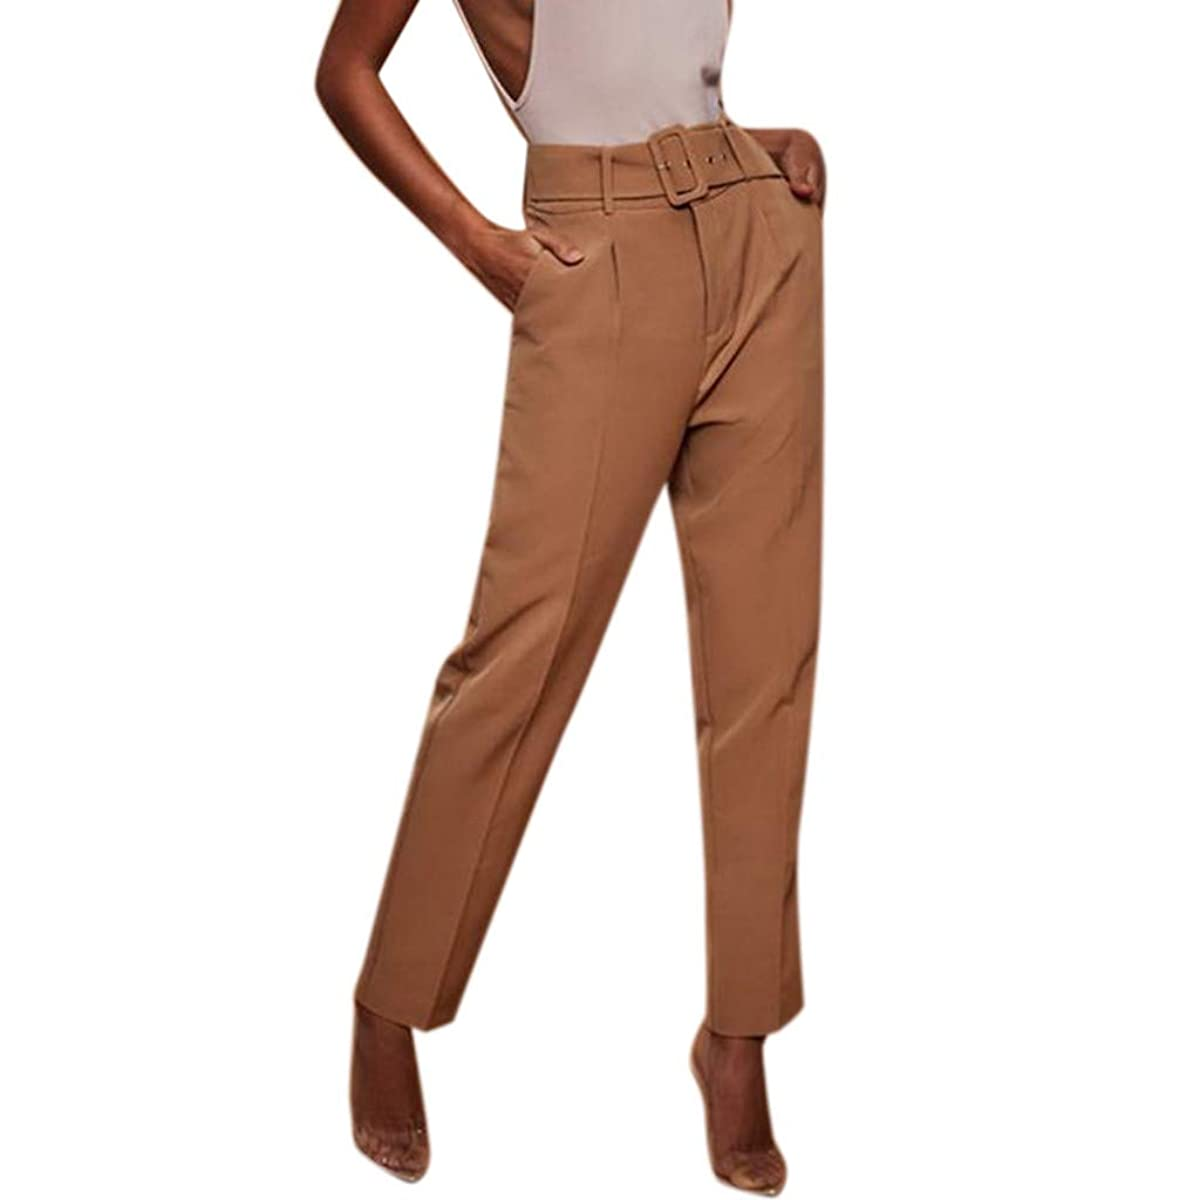 Botrong Pants for Women, Solid High Waisted Loose Pencil Pants Stretch Long Trousers with Pockets